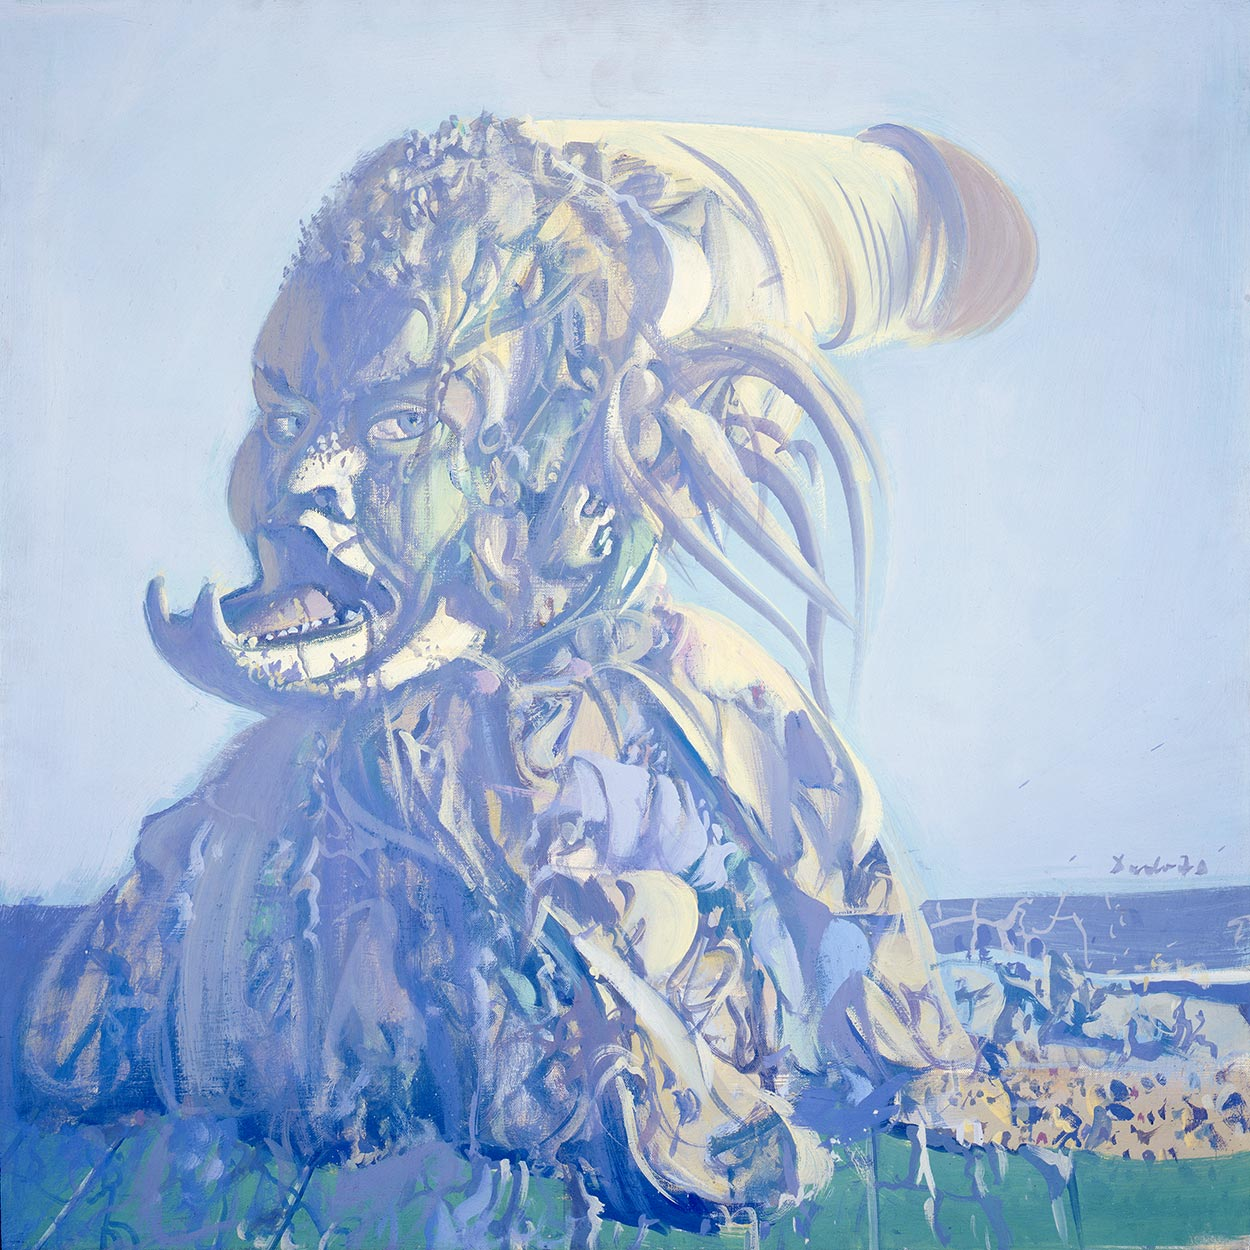 Dado's painting: The Gallery of Ancestors IV, 1970